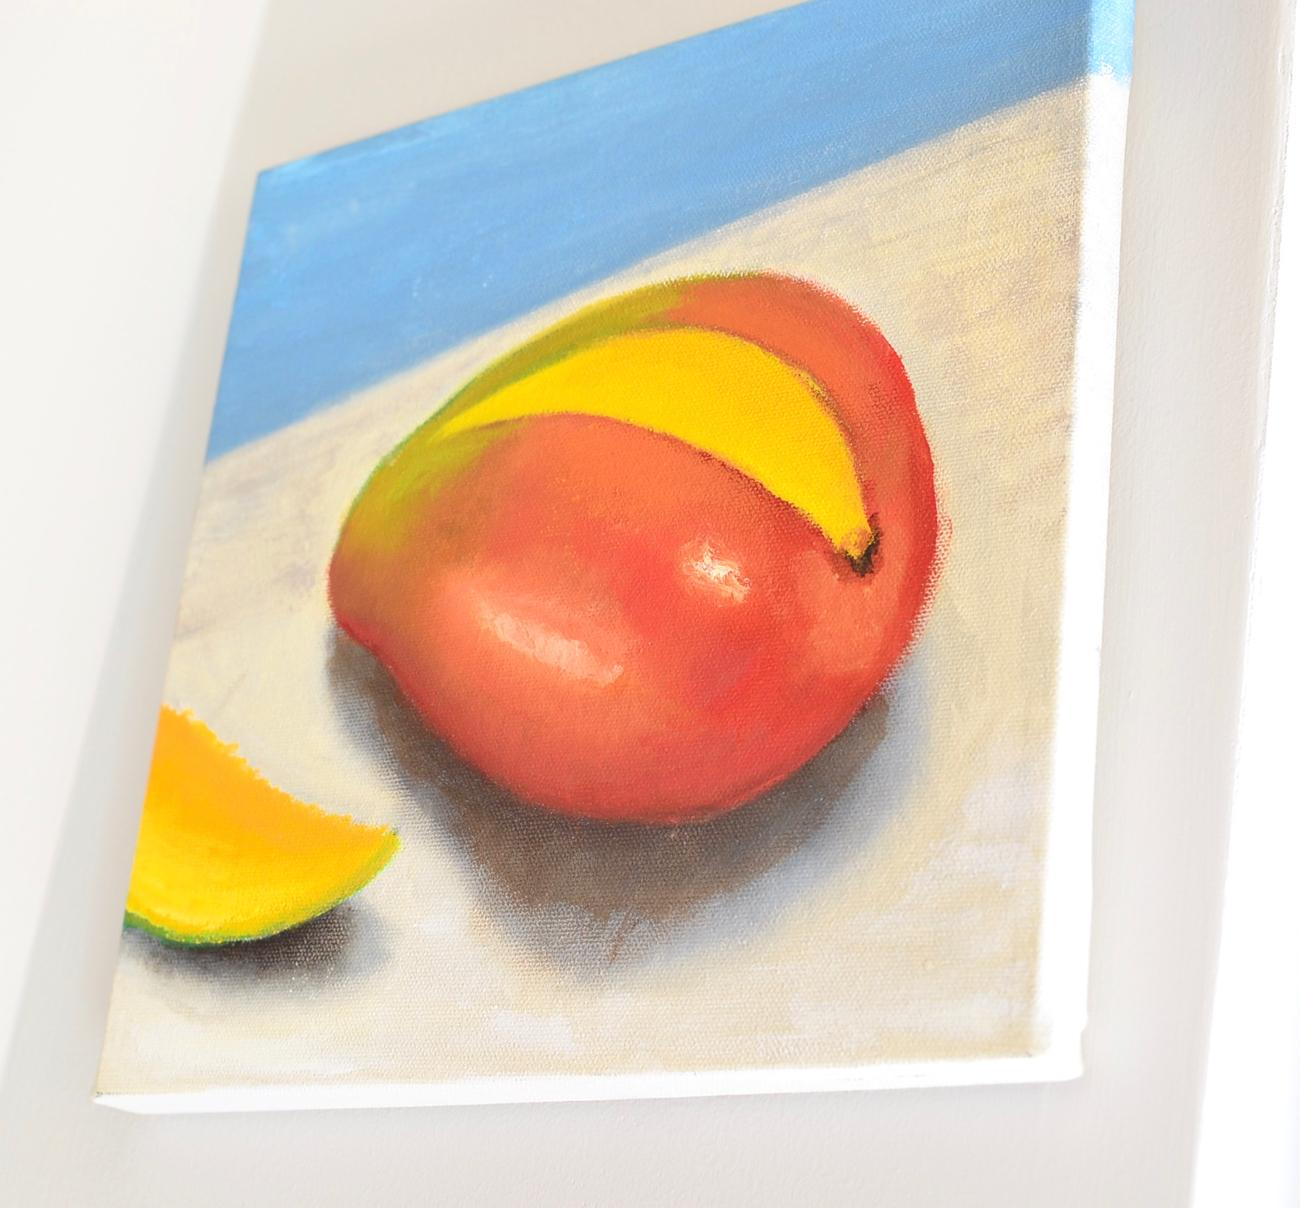 Mango oil canvas by Megan Schmitt, Amanda's sister who passed away in December 2017, hanging in the store / Image: Leah Zipperstein, Cincinnati Refined // Published: 3.10.18